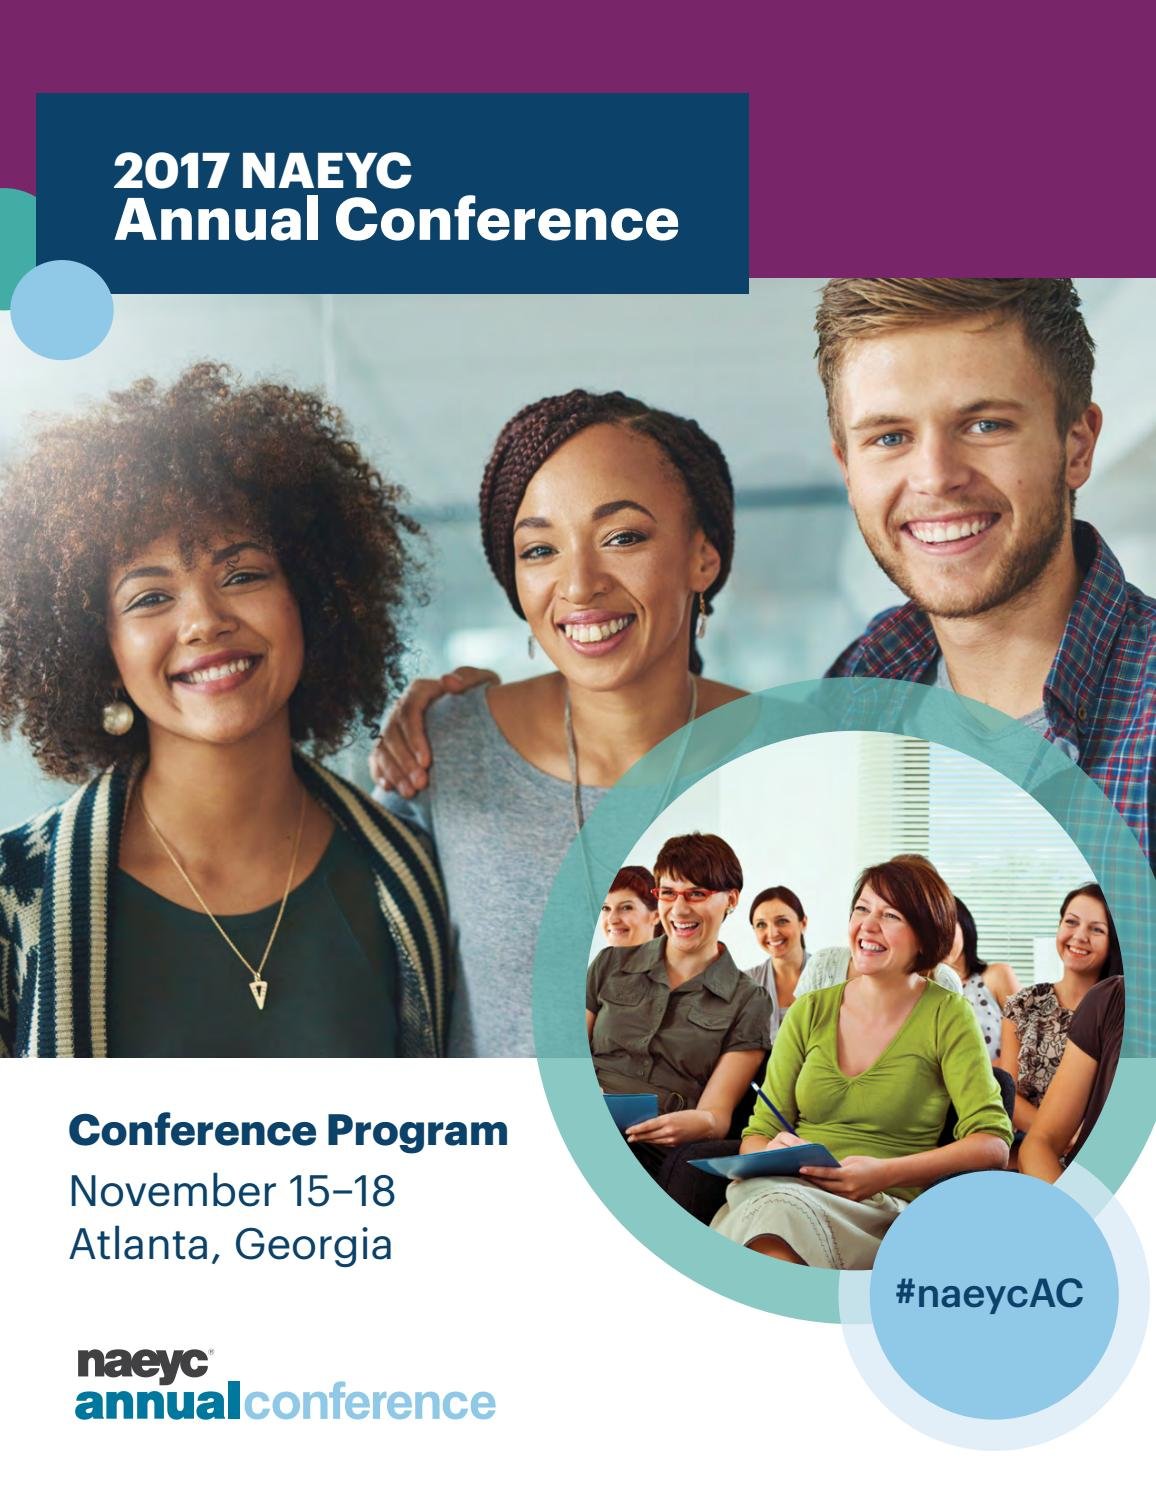 3add8aec90d NAEYC 2017 Annual Conference Program by NAEYC - issuu